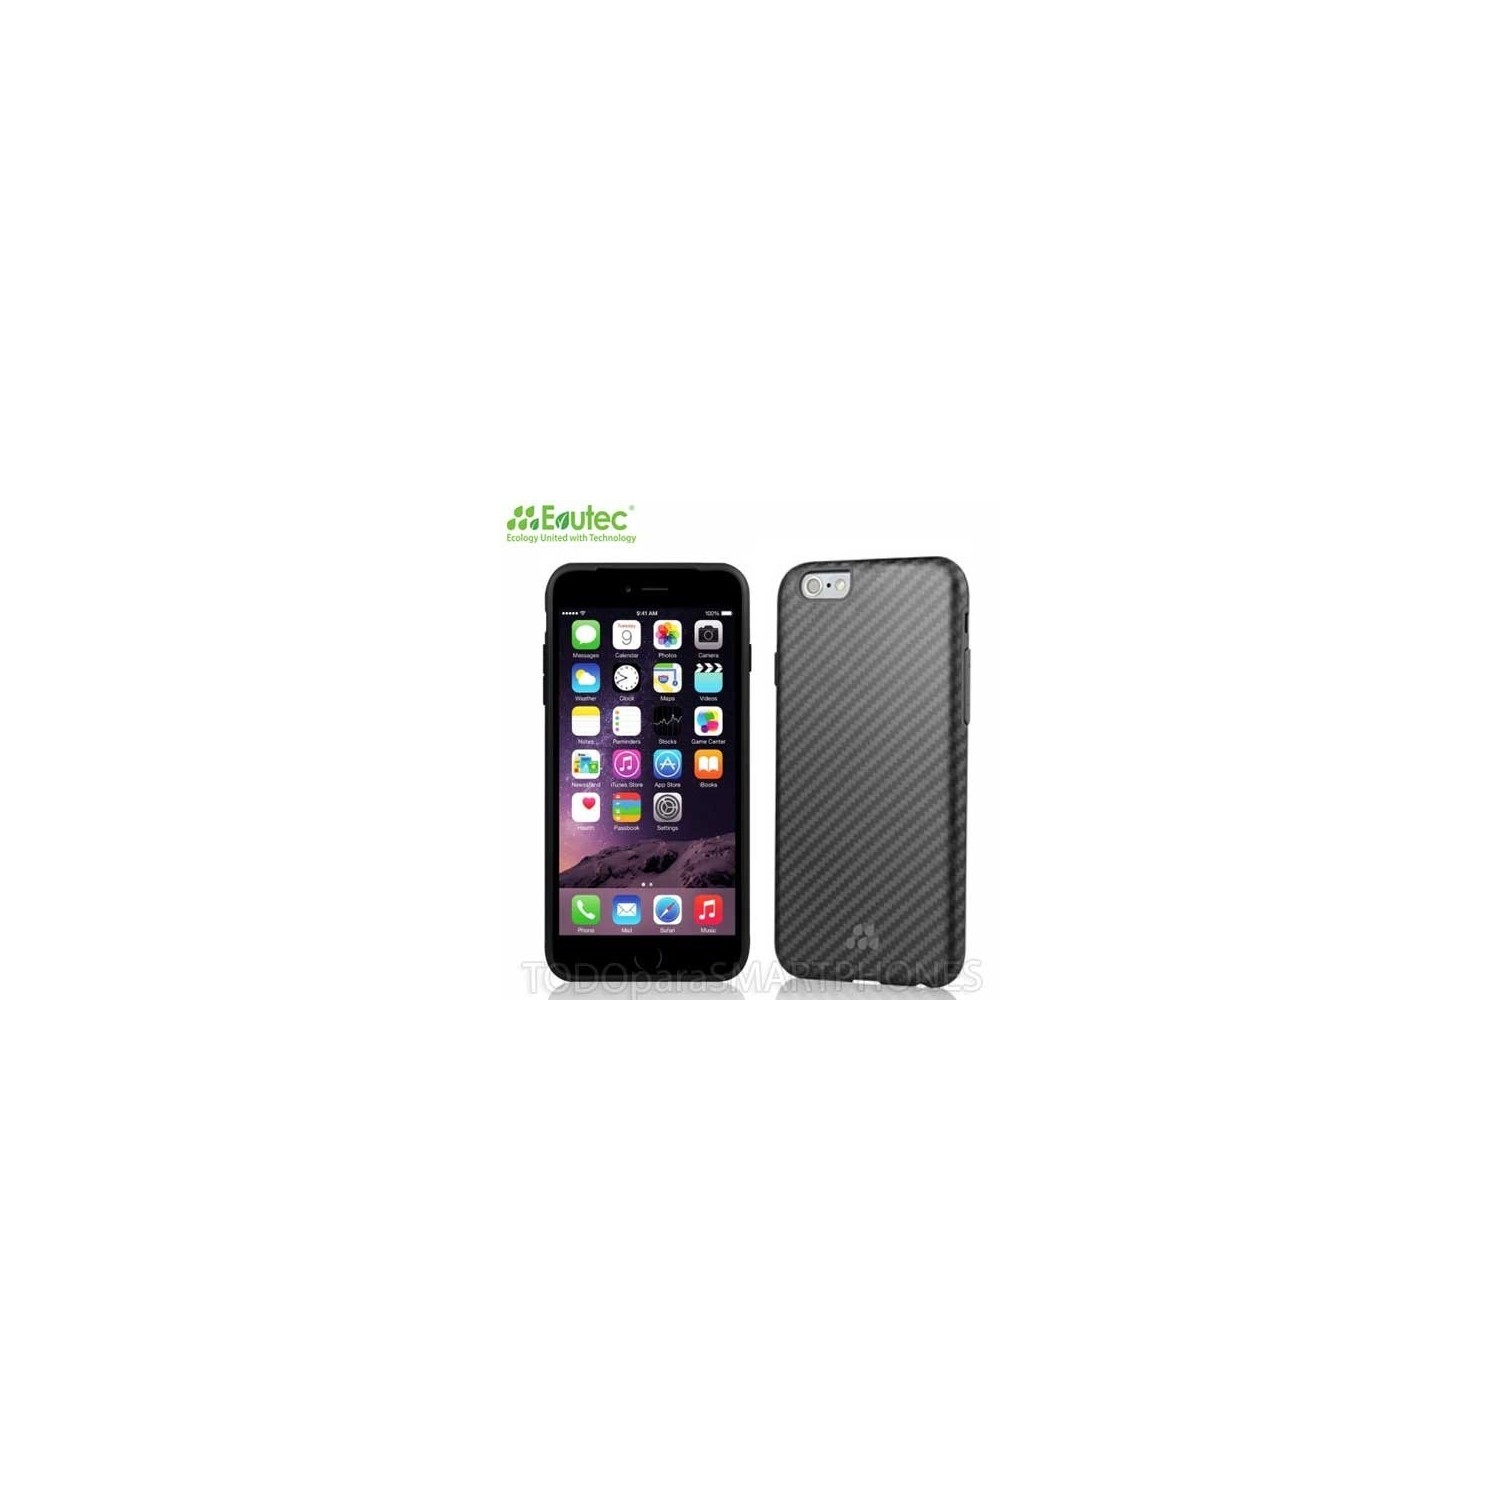 Funda EVUTEC serie SI para iPhone 6 Plus Karbon Negro